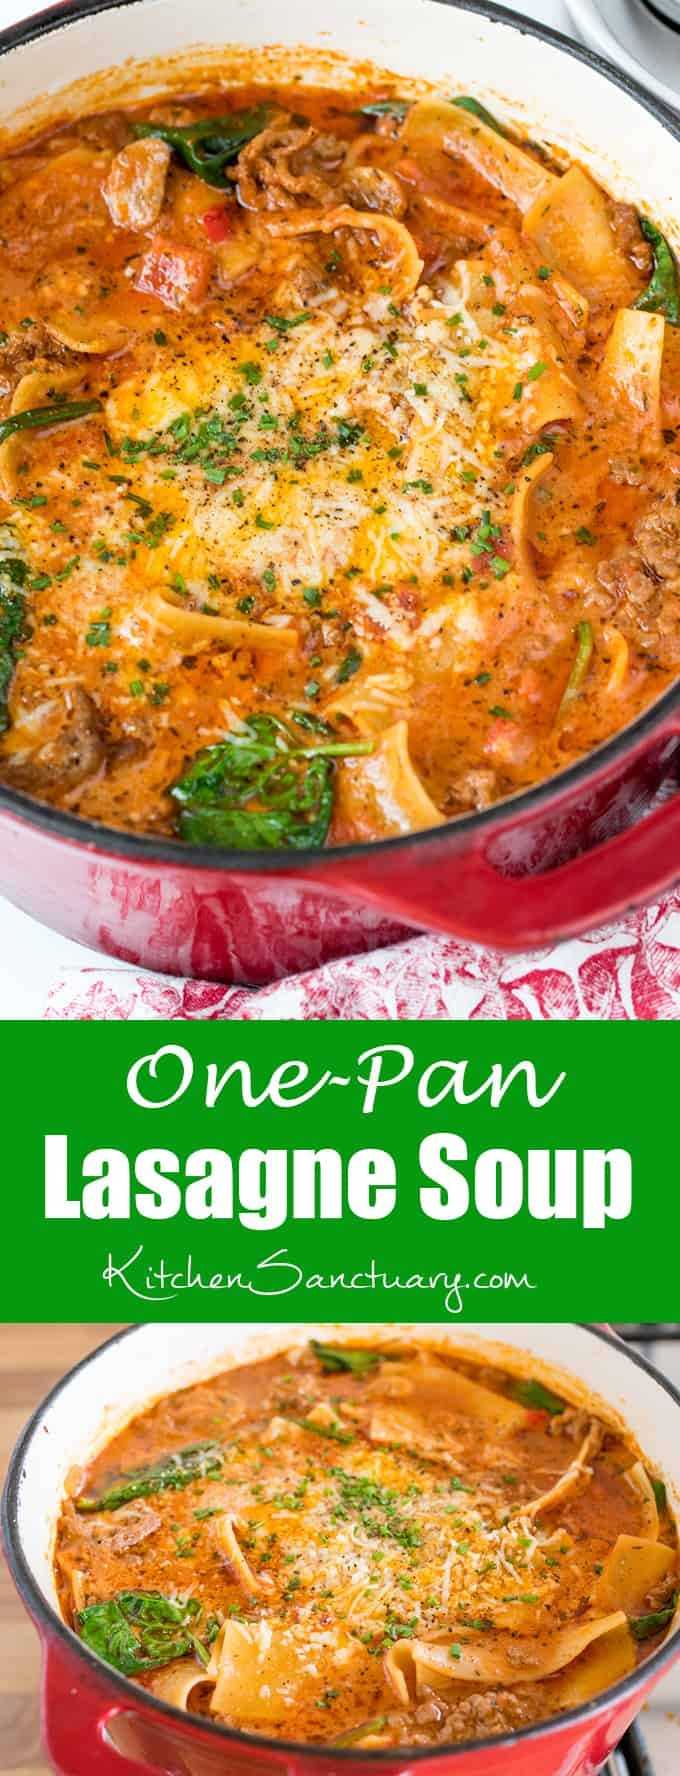 One pan lasagne soup - all the taste of lasagne but so much simpler!